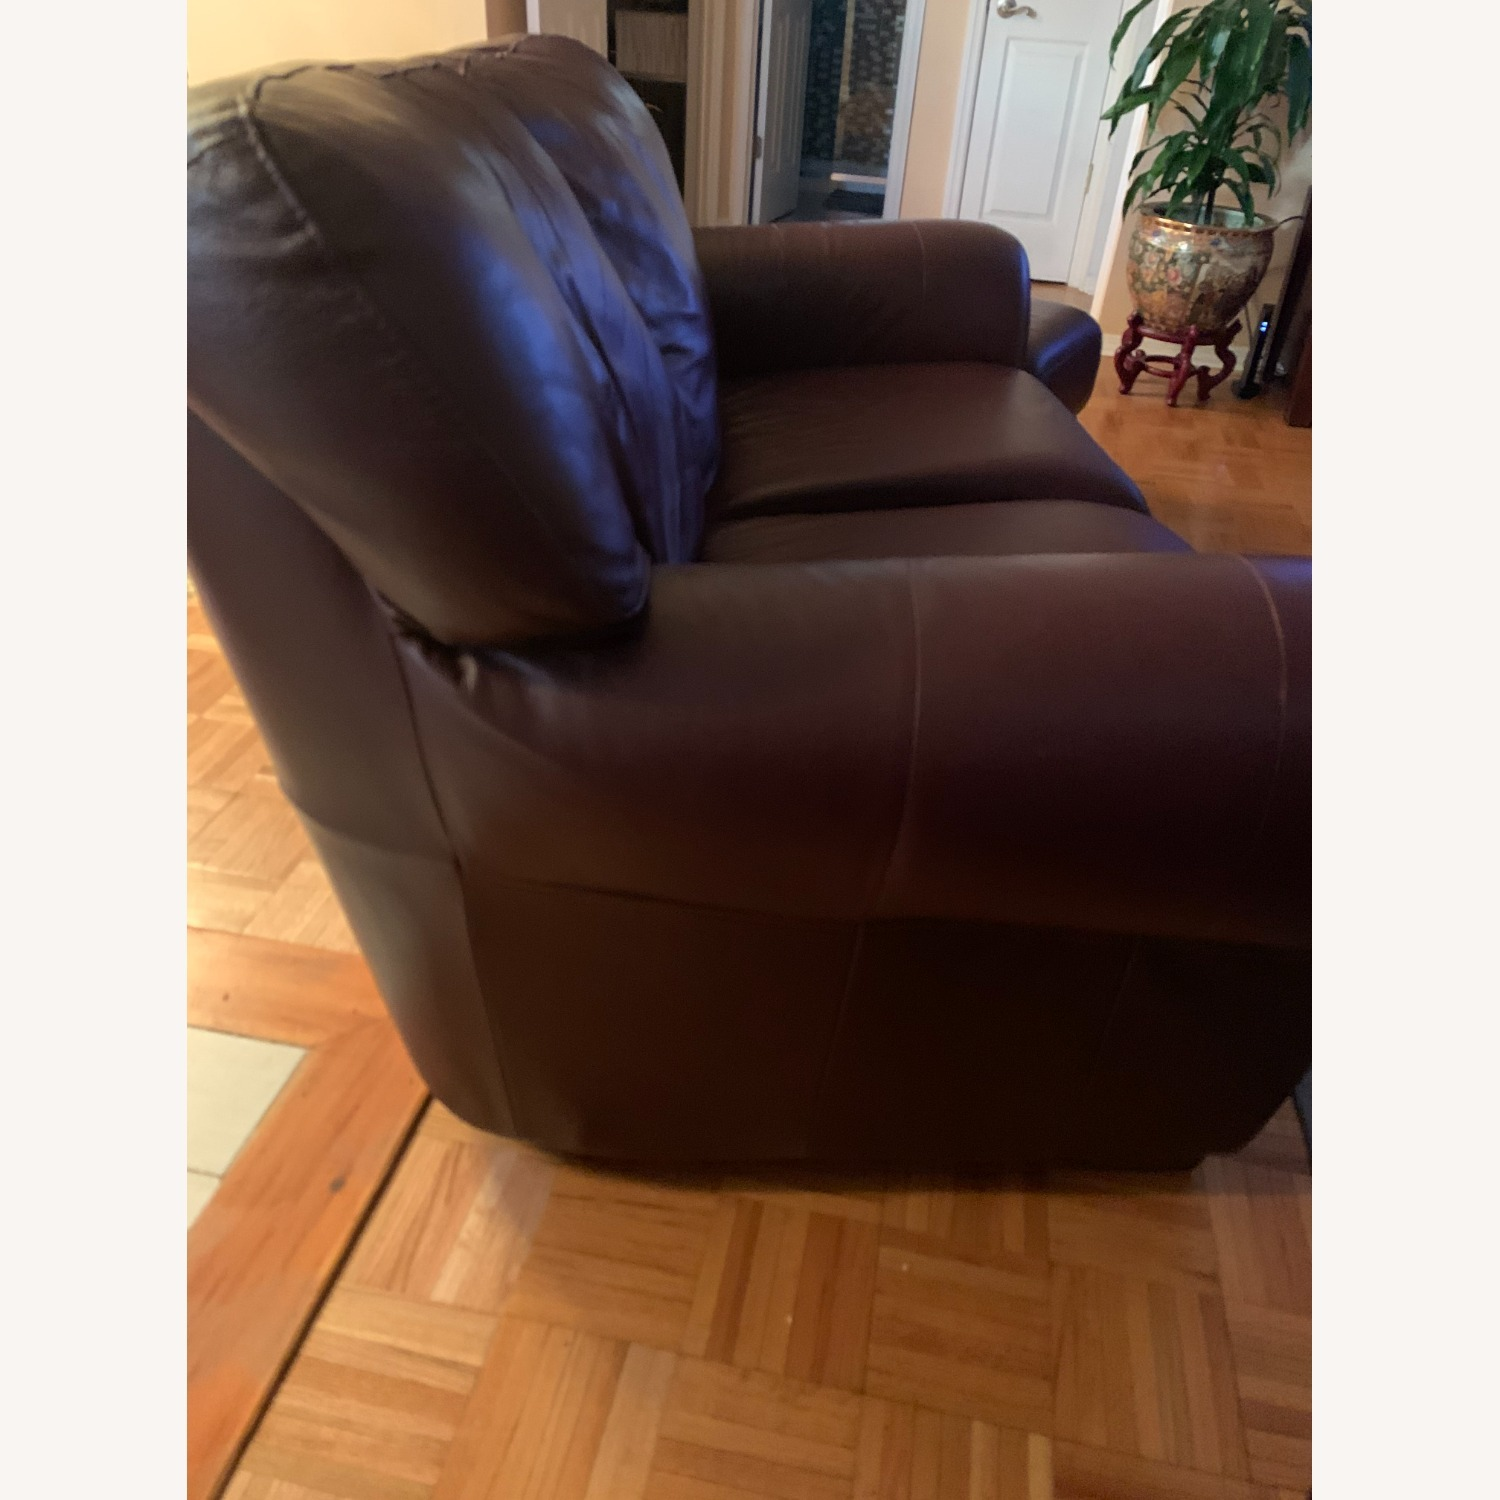 100% Leather Loveseat with Ottoman - image-1